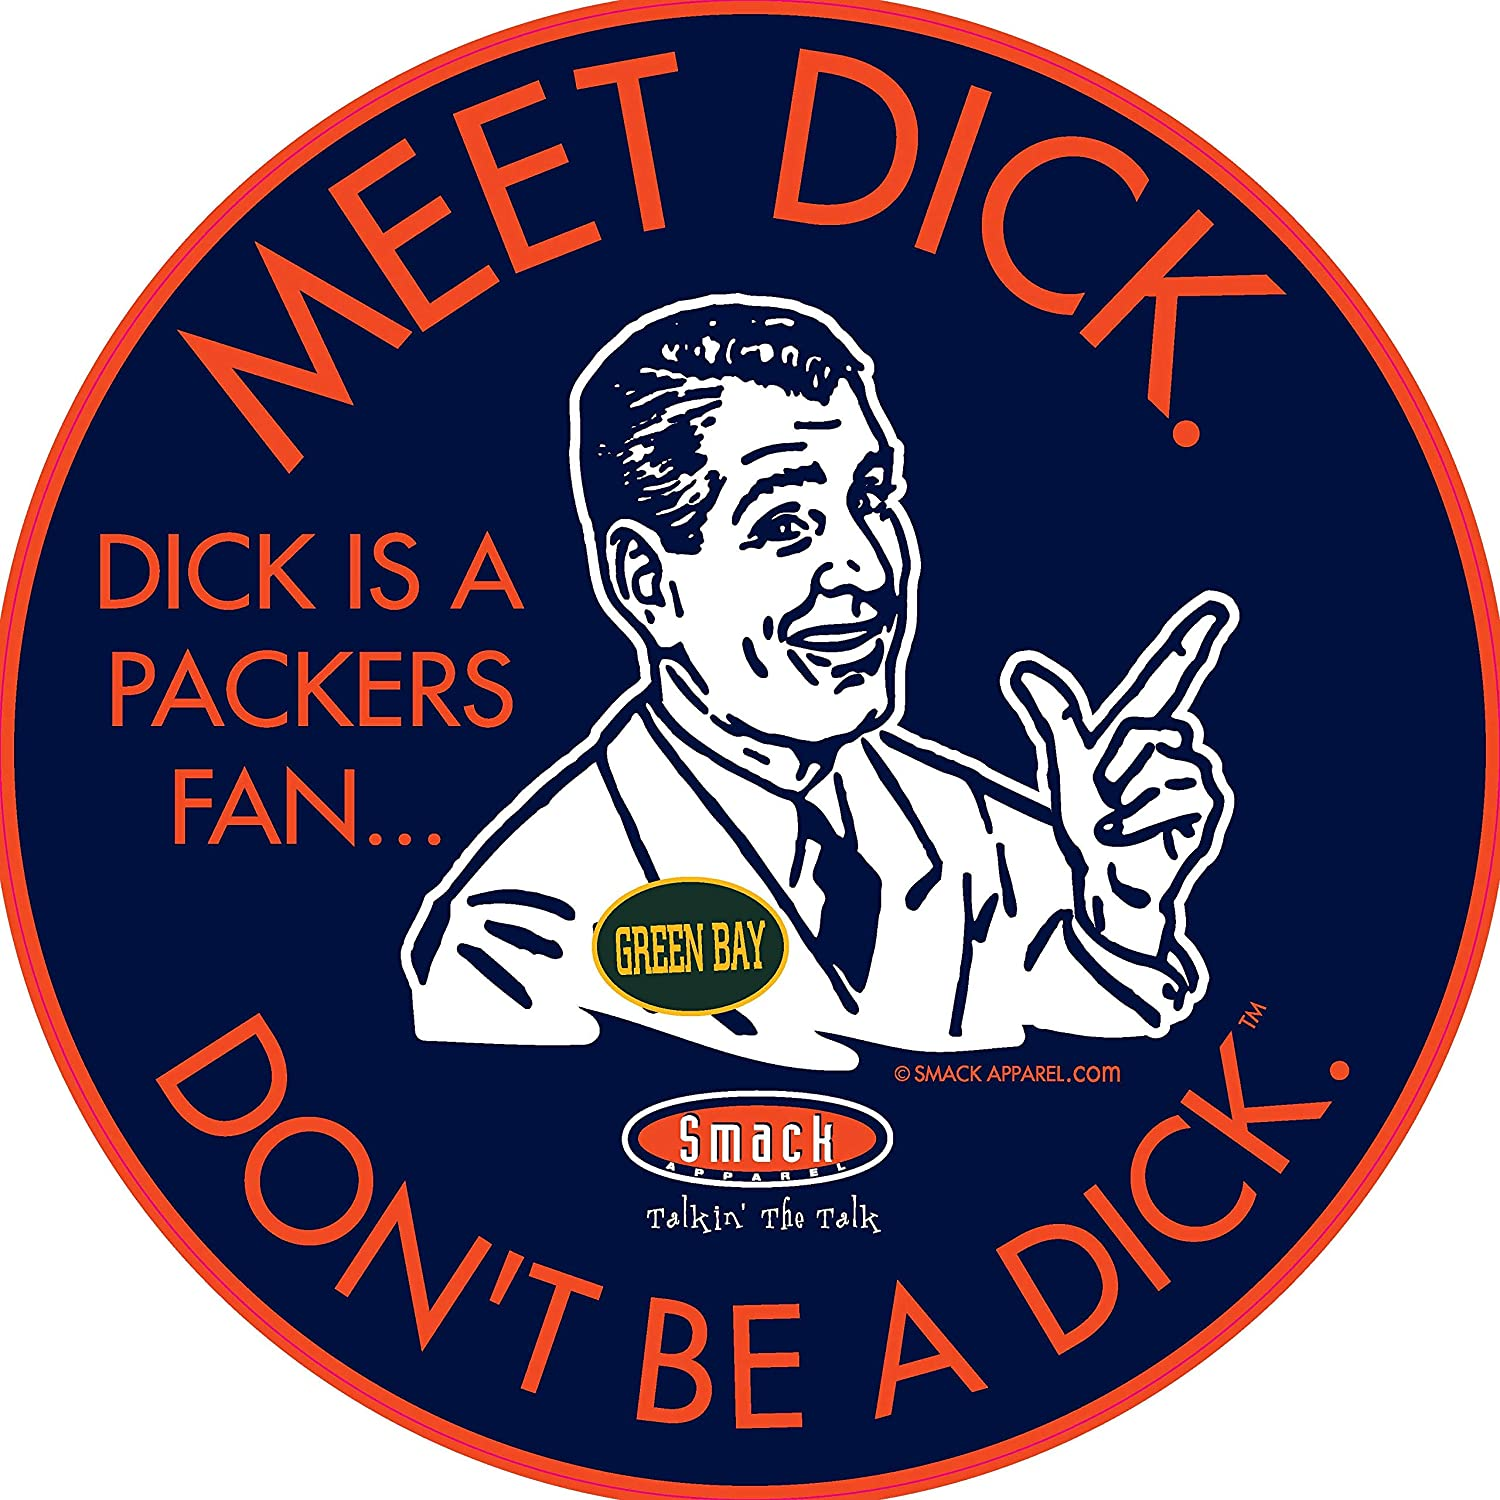 Dont be a D!ck Navy T-Shirt Sm-5X or Sticker Chicago Football Fans Anti-Packers